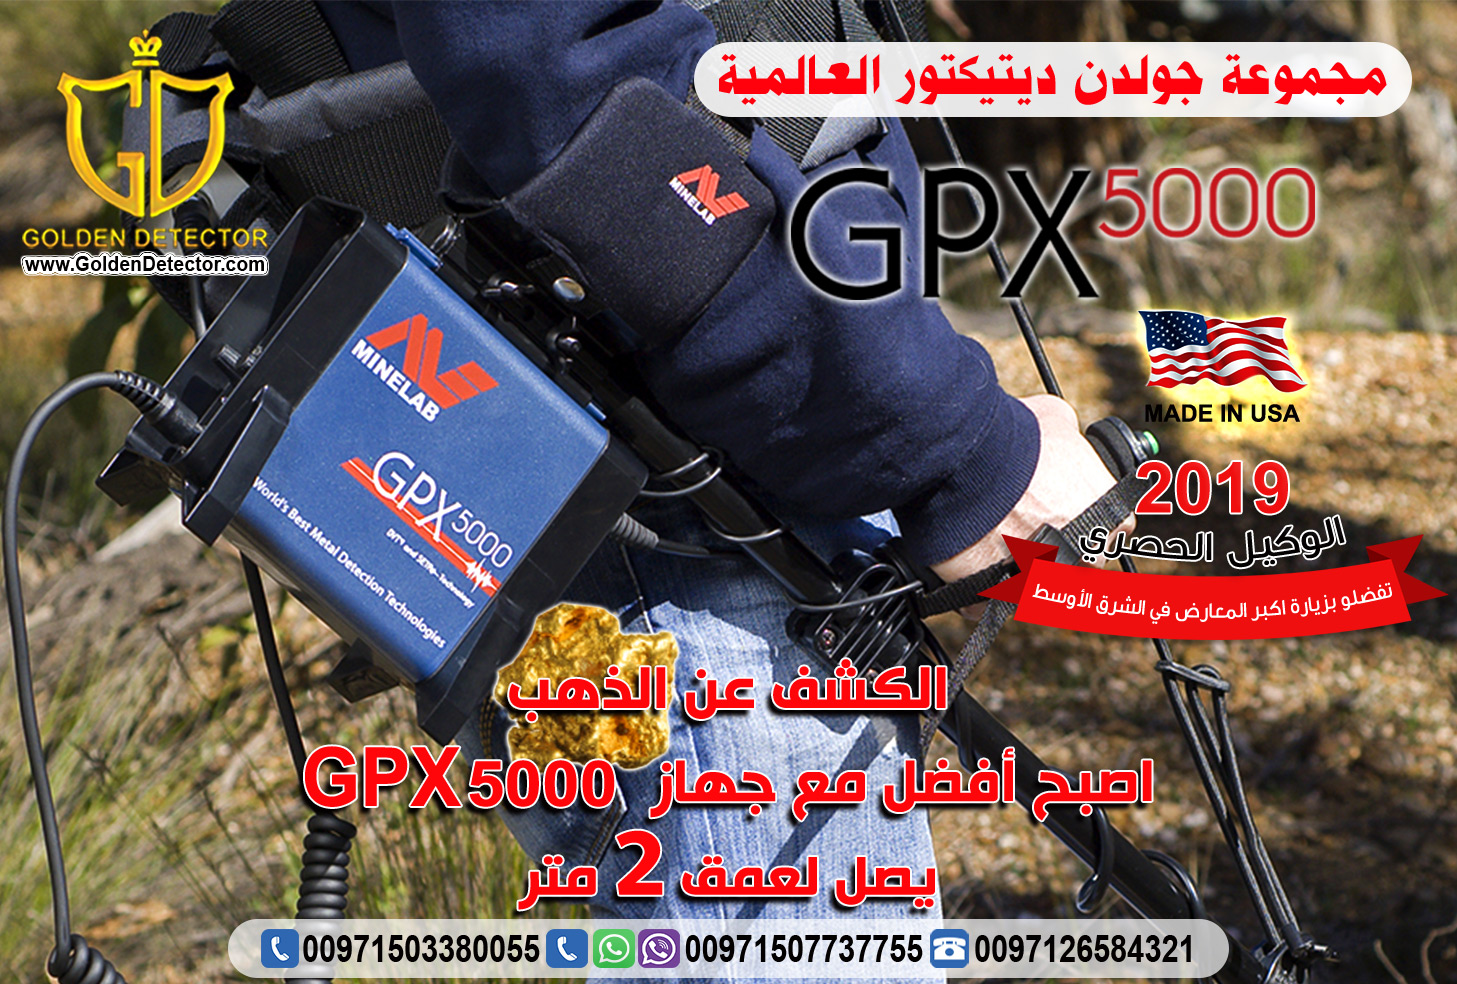 جهاز كشف الذهب الخام وعروق الذهب جي بي اكس 5000 GPX 5000